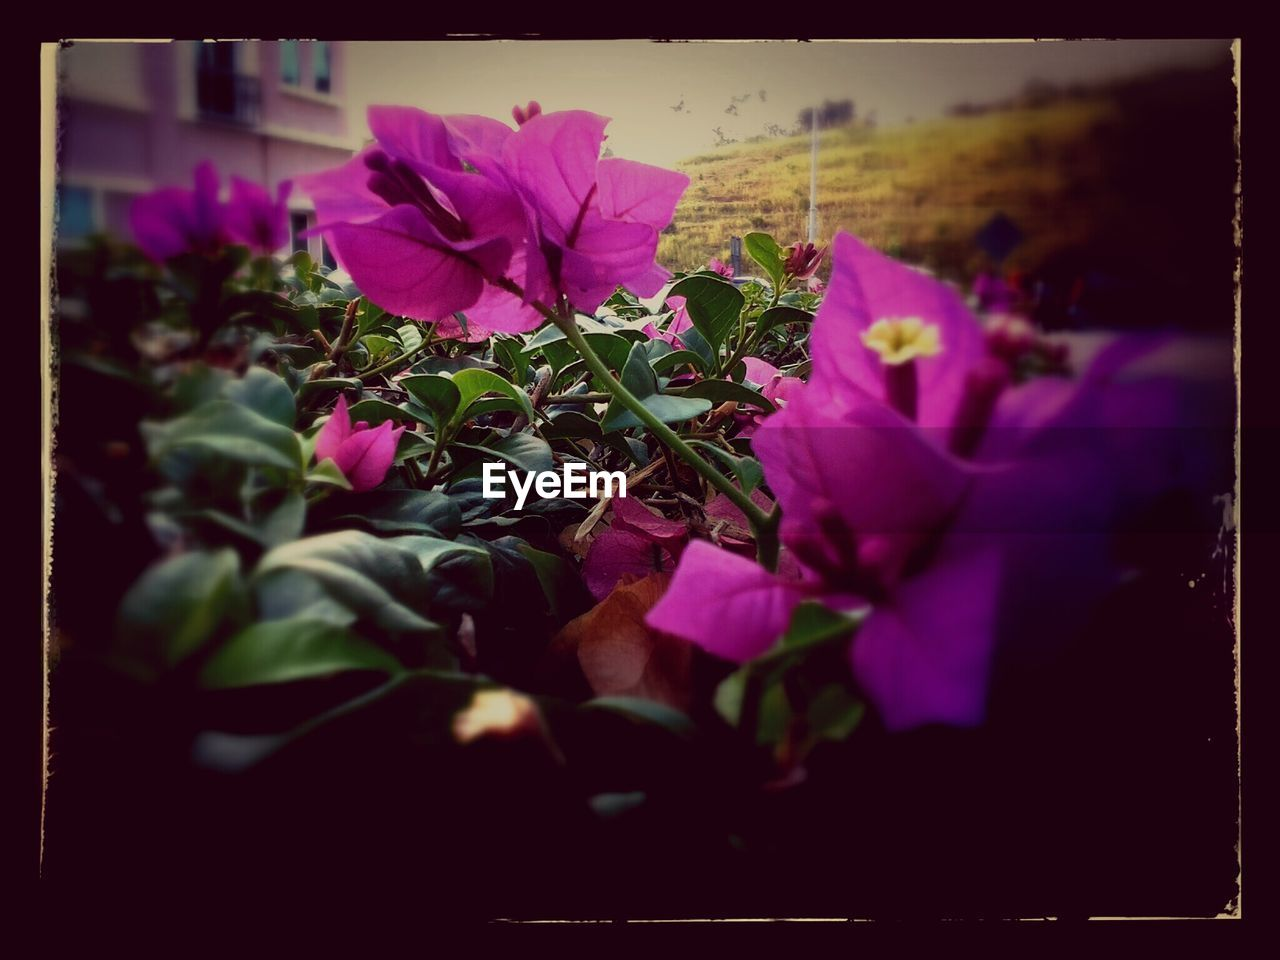 flower, nature, beauty in nature, growth, petal, plant, fragility, no people, purple, pink color, outdoors, flower head, blooming, freshness, close-up, bougainvillea, day, petunia